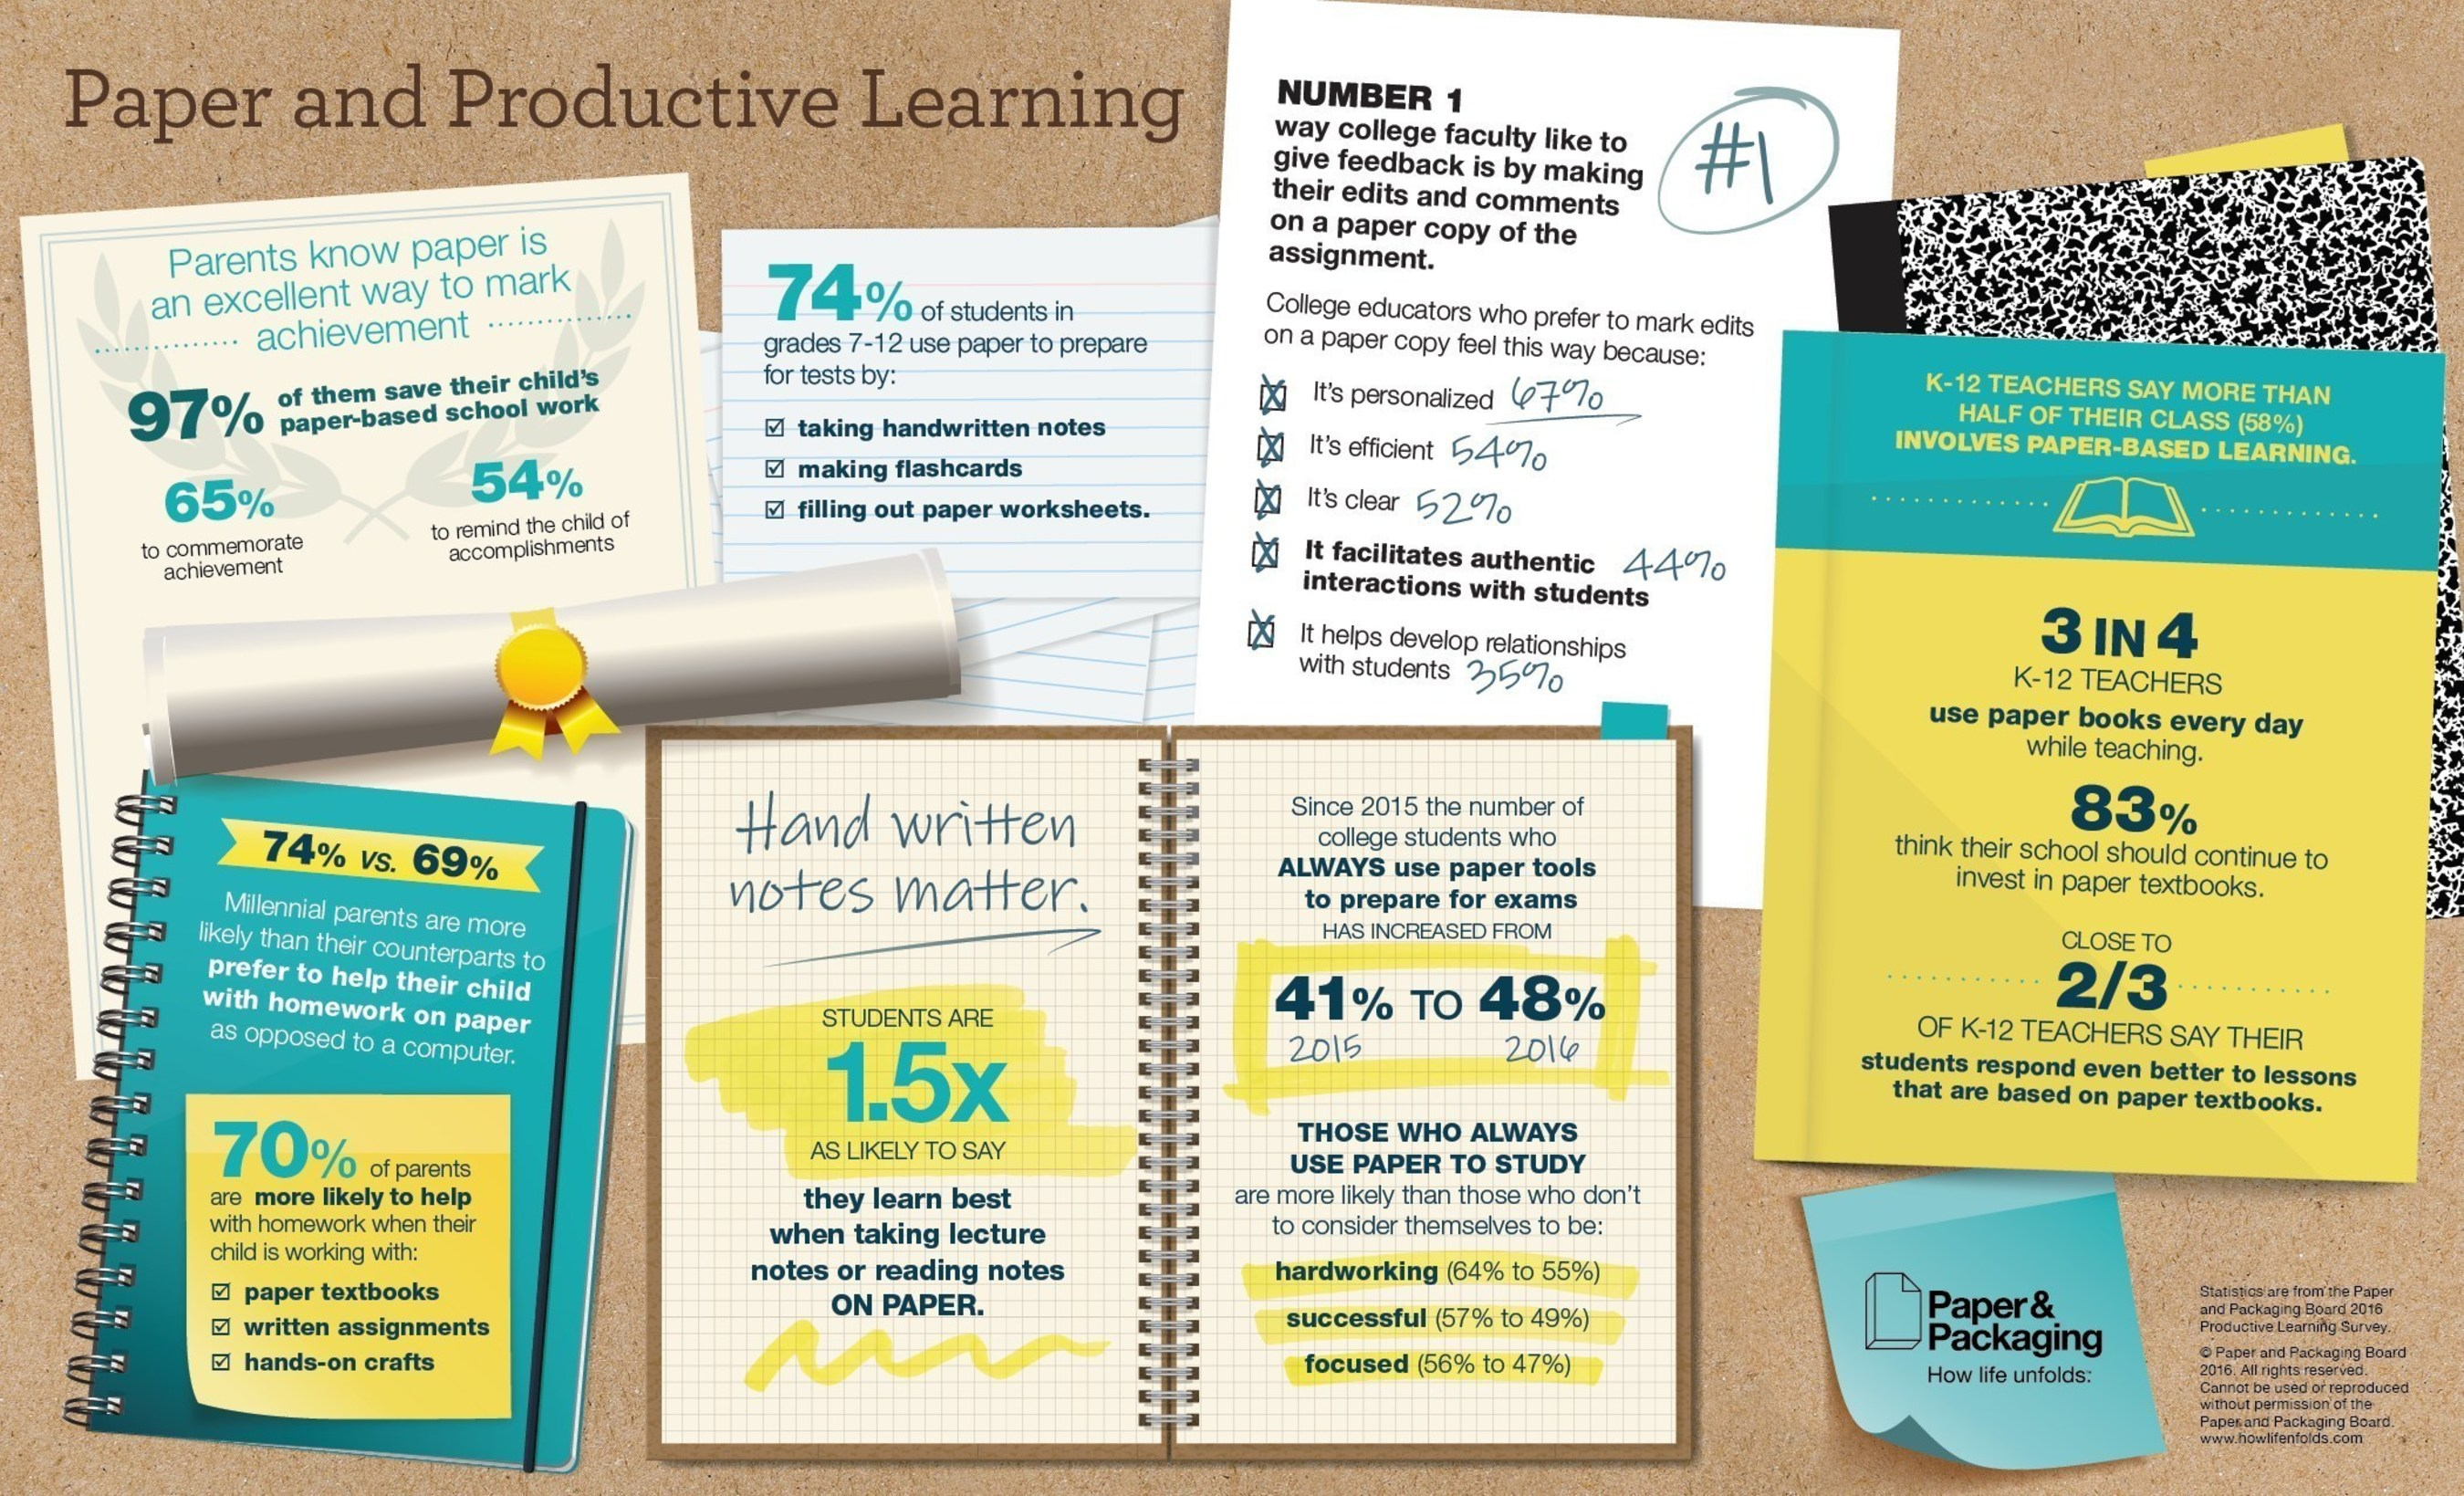 The Paper and Productive Learning infographic